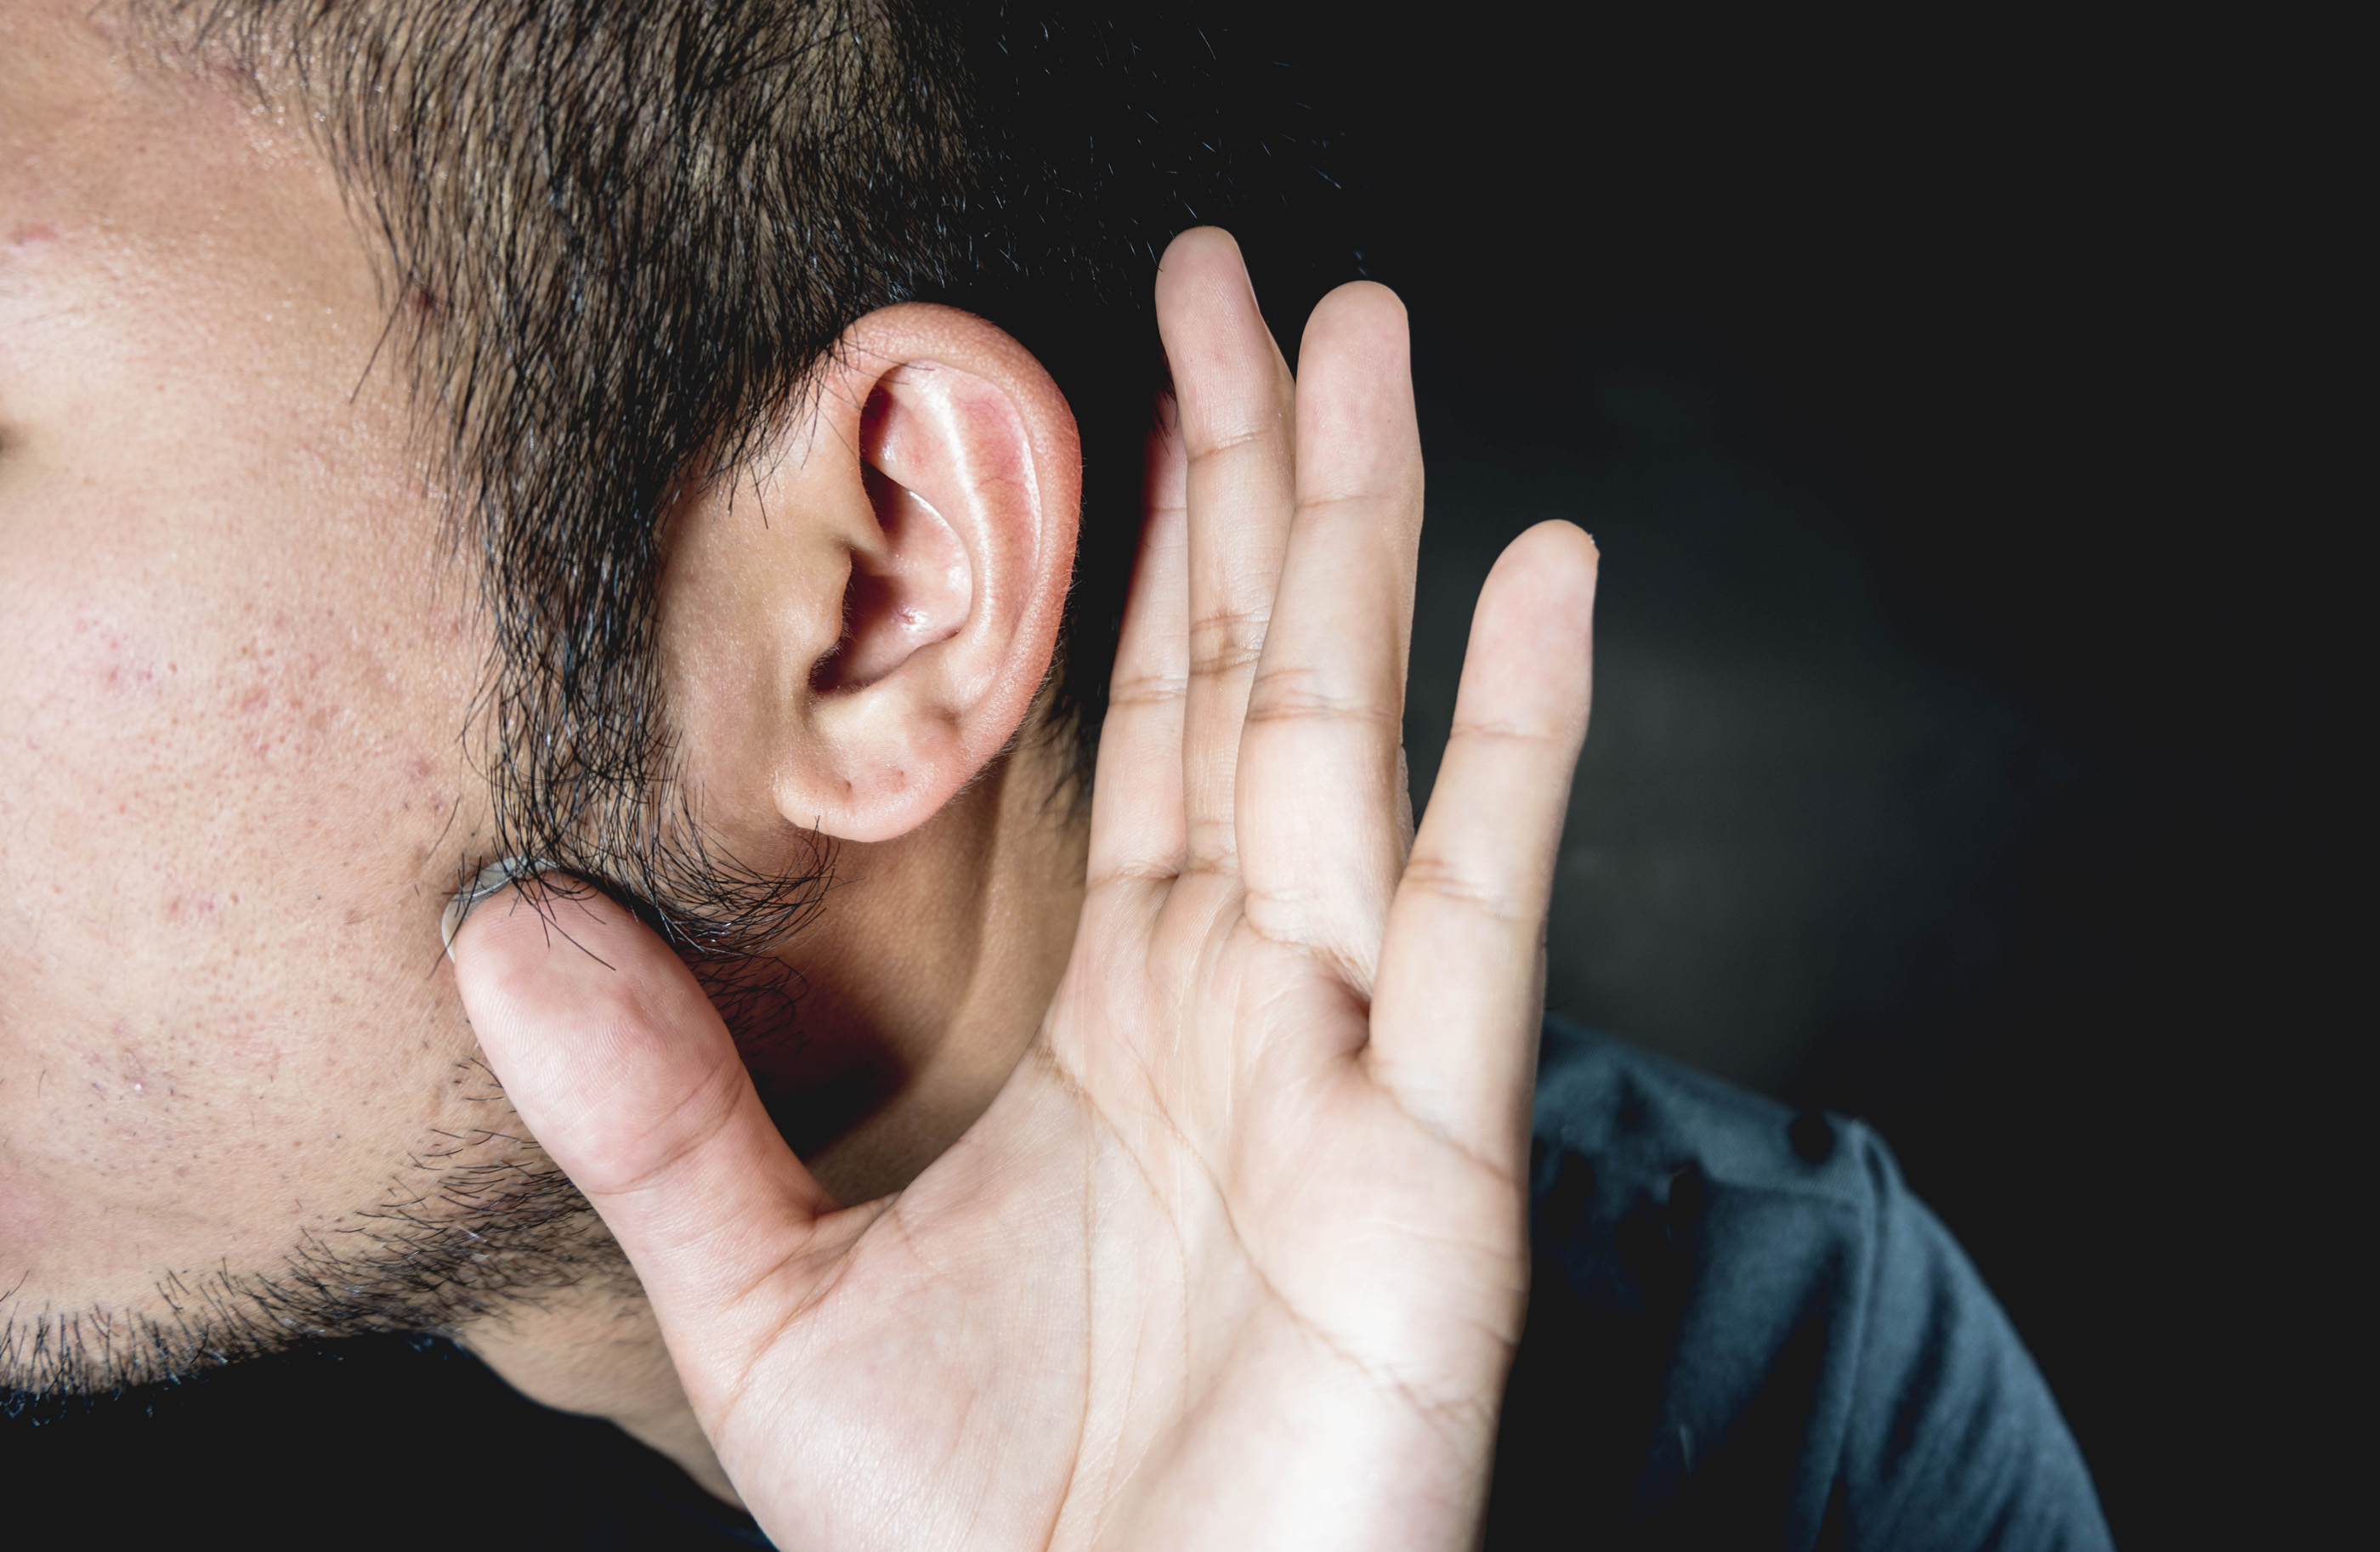 COVID-19 linked to sudden hearing loss | Live Science